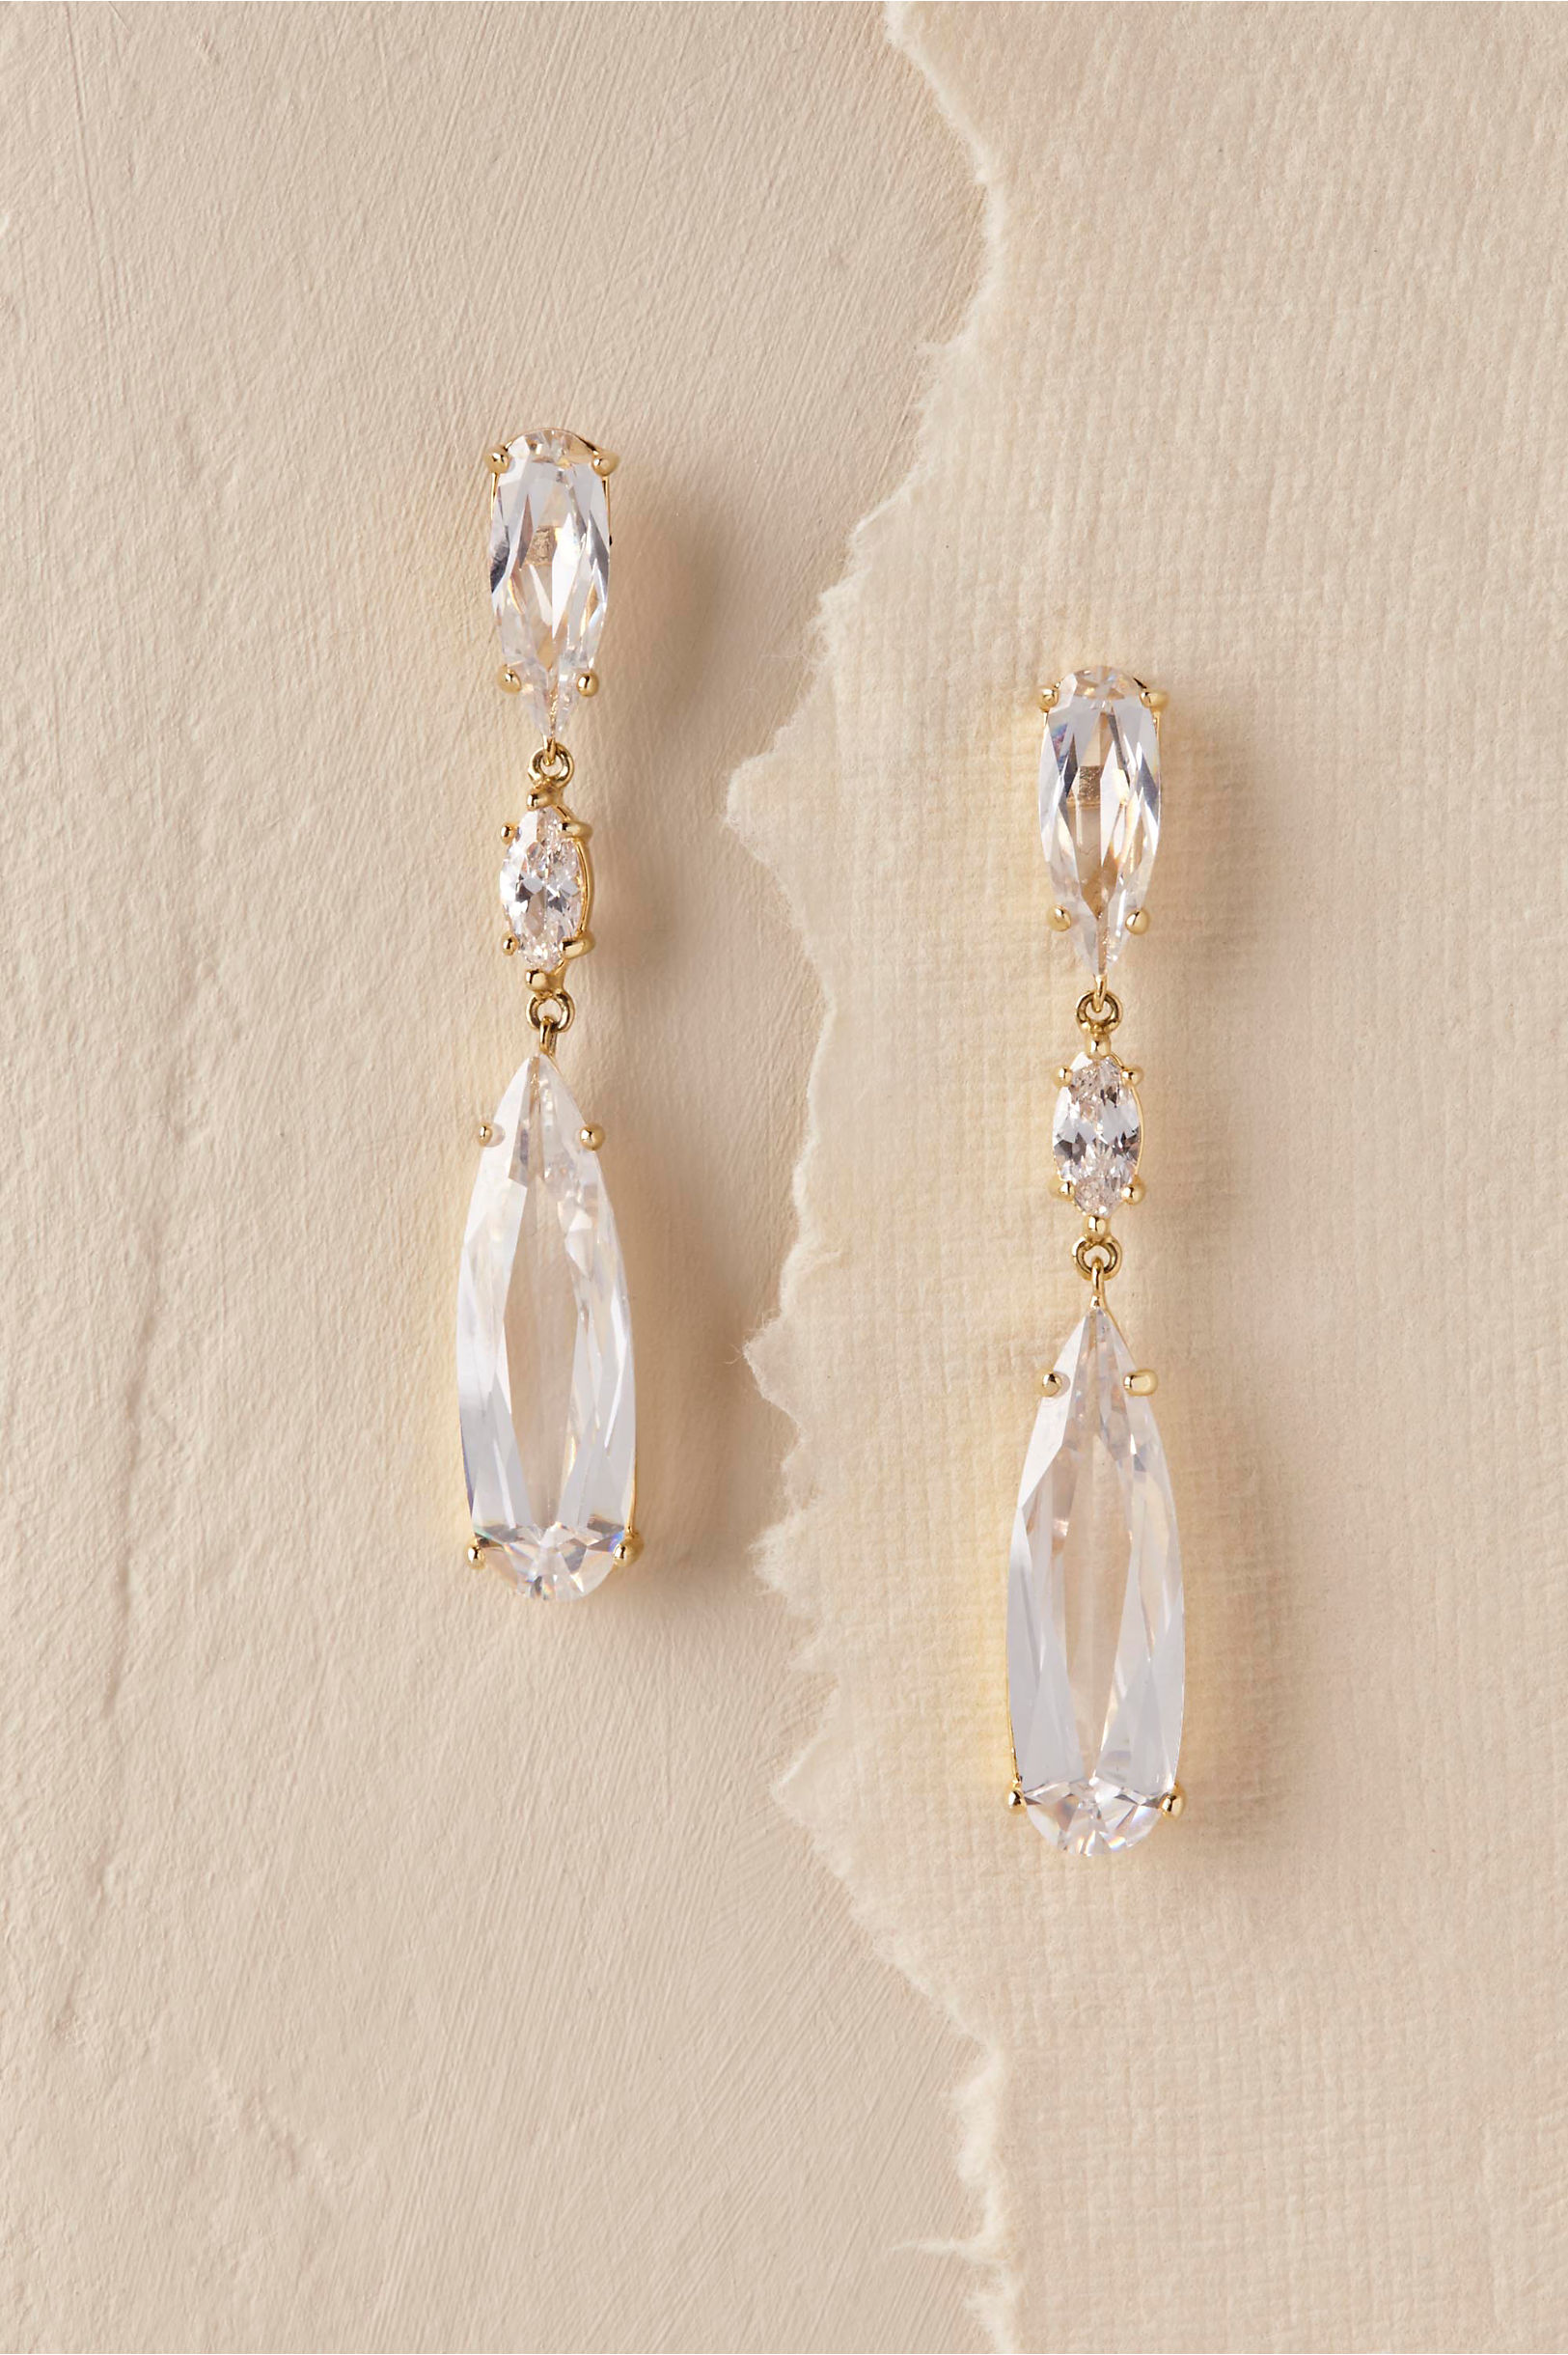 039df159c2dc0b Free photo: Crystal earrings - Jewelry, Expensive, Posh - Free ...